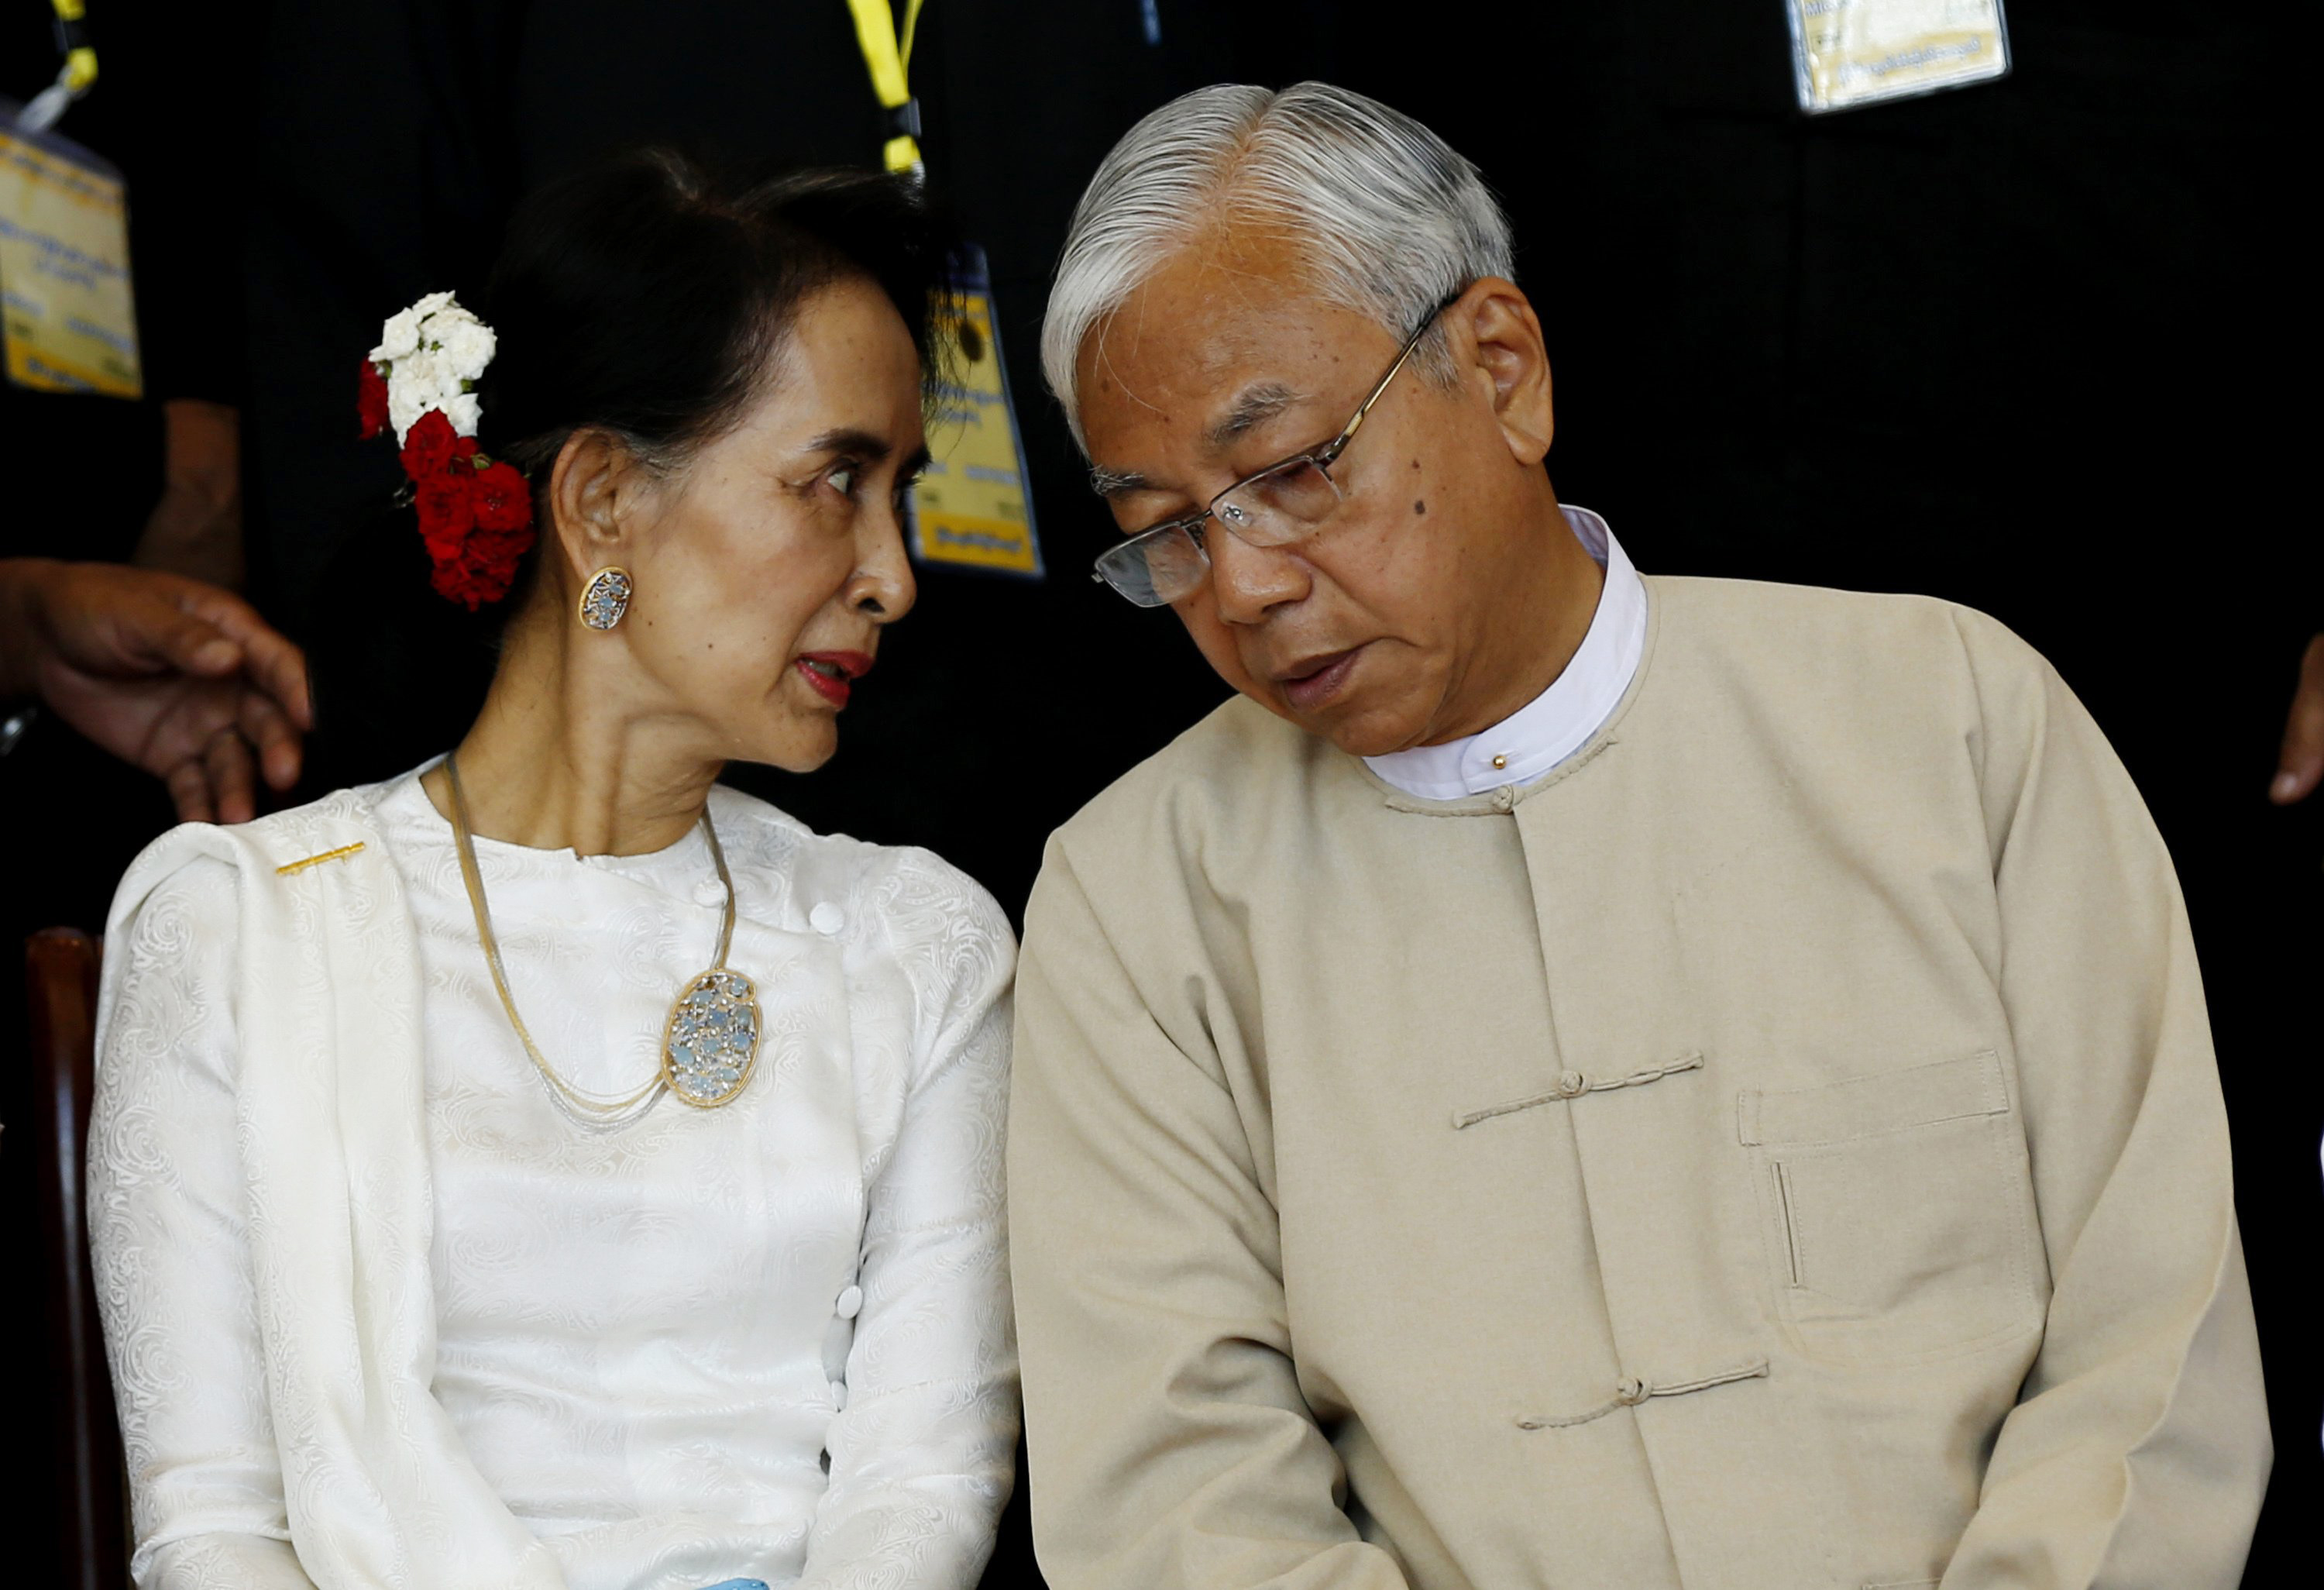 Burmese President Htin Kyaw, right, talks with State Counselor Aung San Suu Kyi during the 21st Century Panglong Peace Conference in Naypyidaw on Aug. 31, 2016